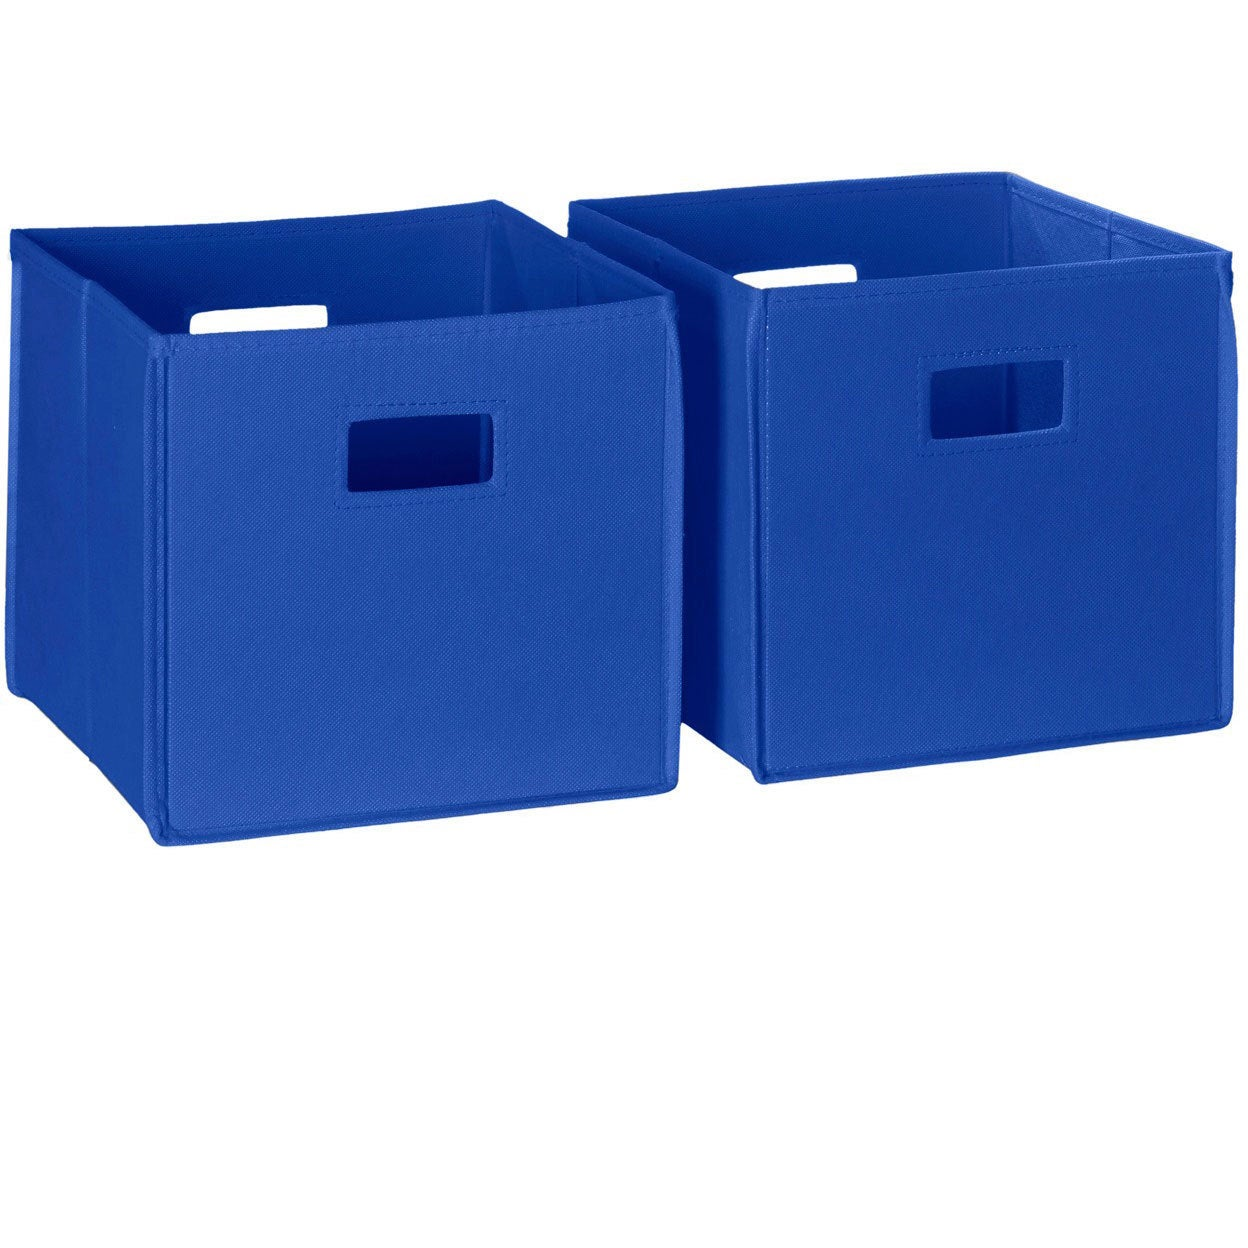 Merveilleux Shop RiverRidge Kids Folding Storage Bins With Handles (Set Of 2)   Free  Shipping On Orders Over $45   Overstock.com   8352538